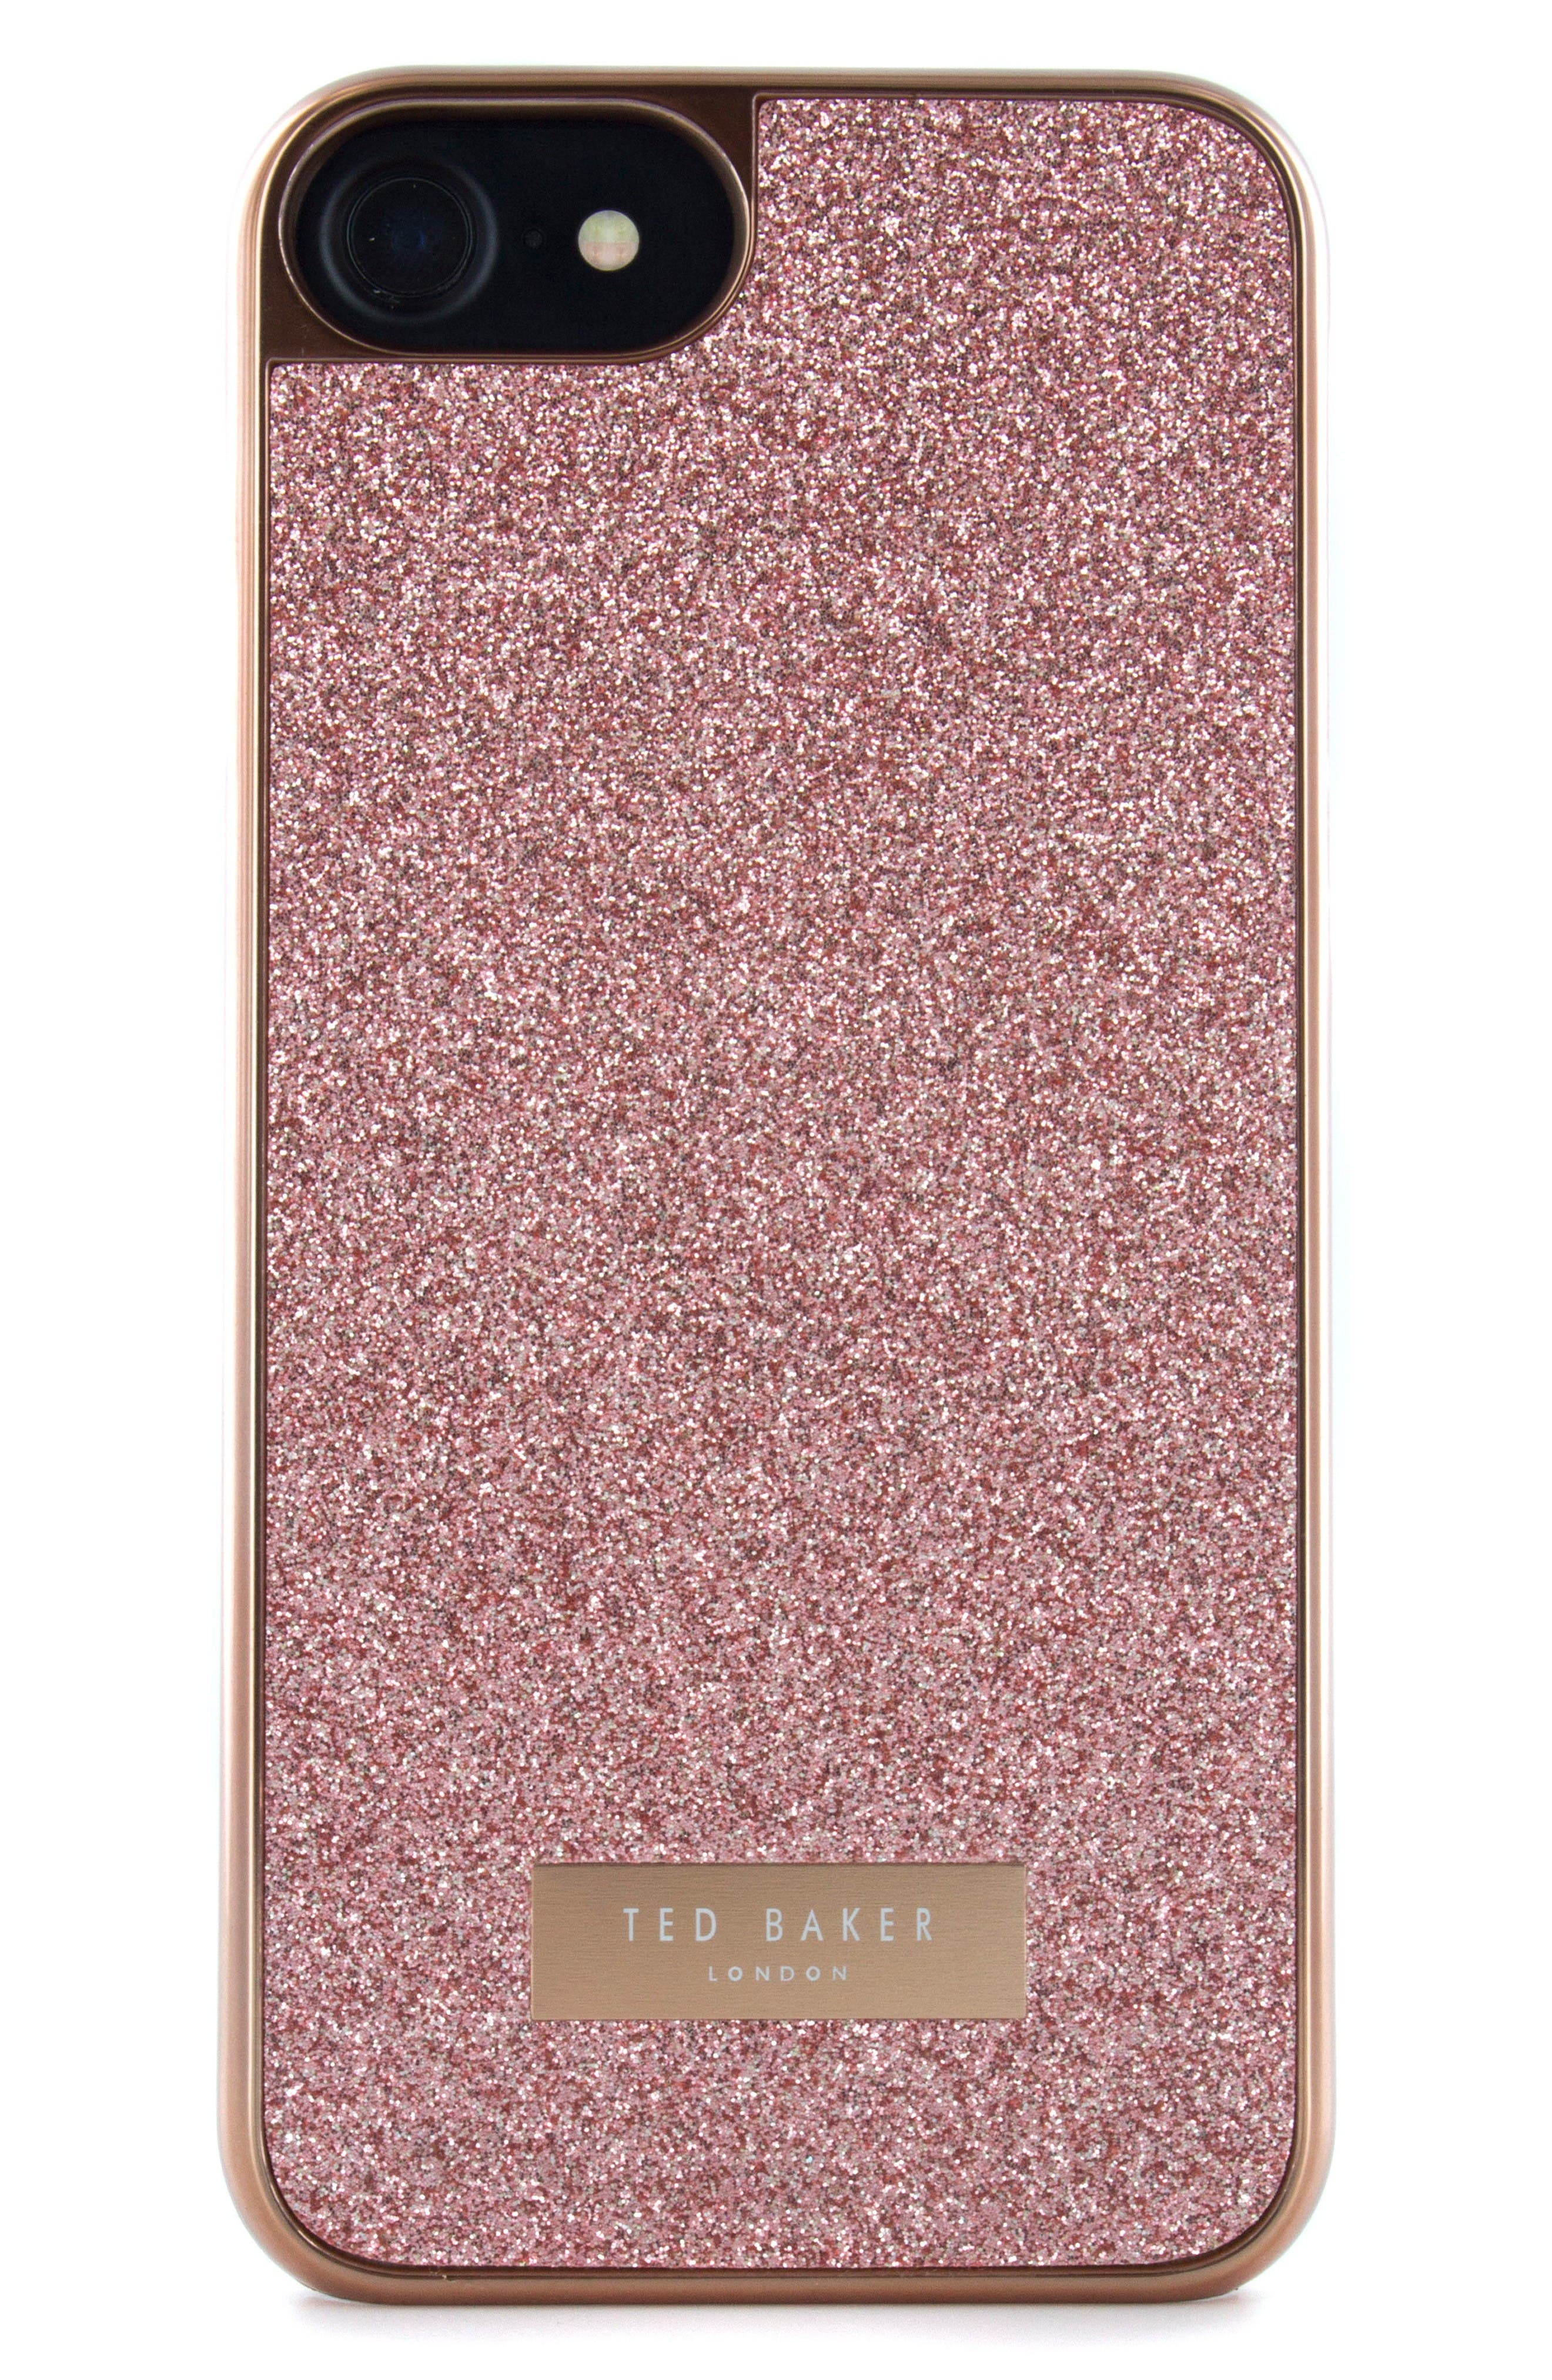 Ted Baker London Sparkles iPhone 6/6s/7/8 & 6/6s/7/8 Plus Case